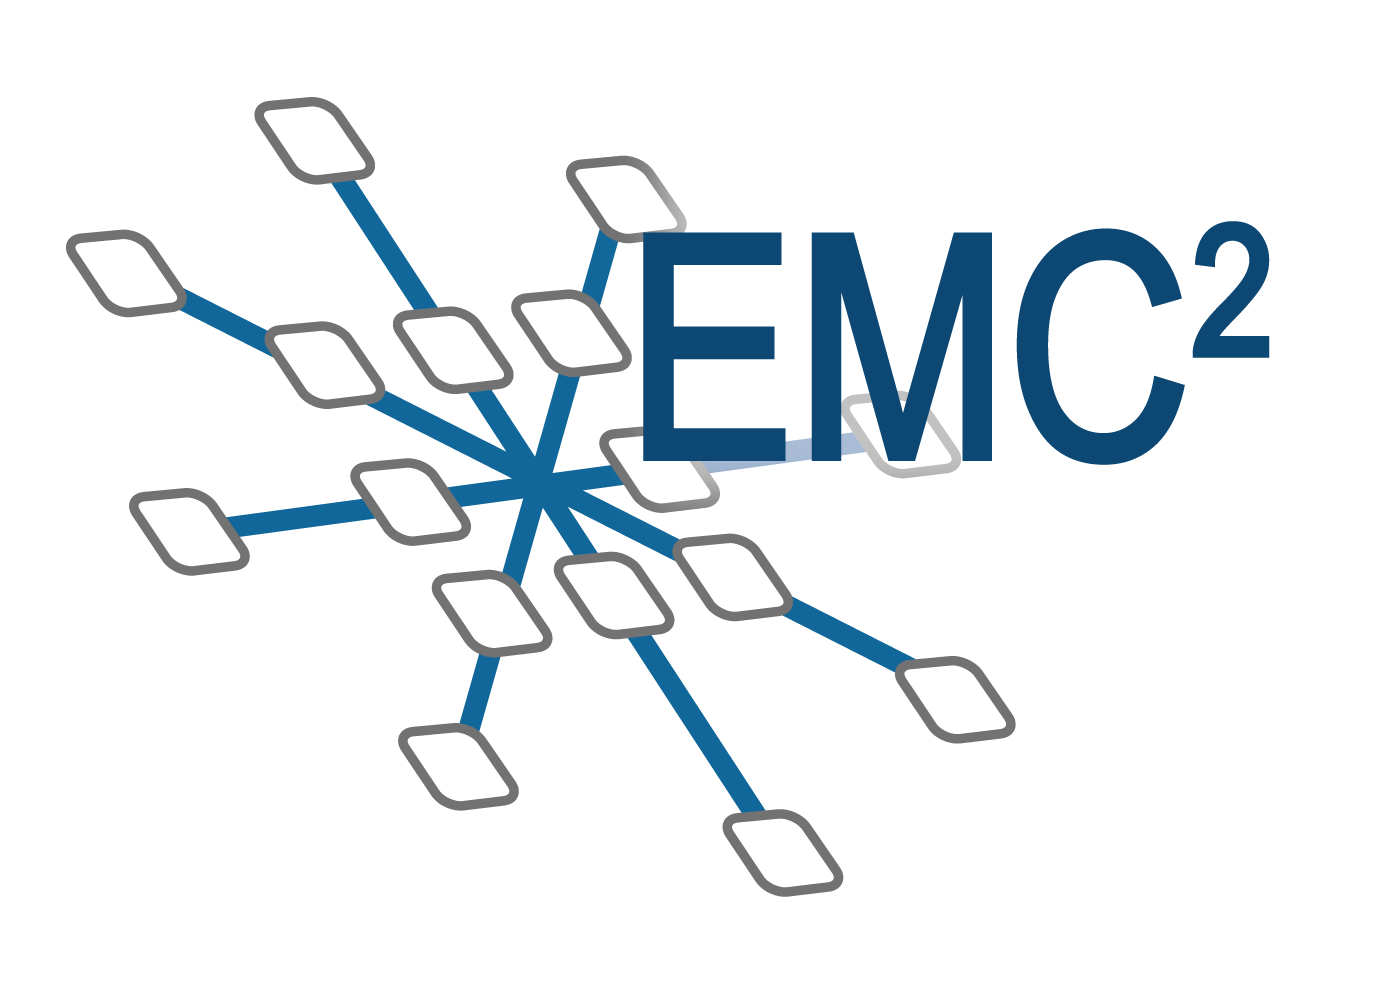 EMC² - Embedded Multi-Core systems for Mixed Criticality applications in dynamic and changeable real-time environments